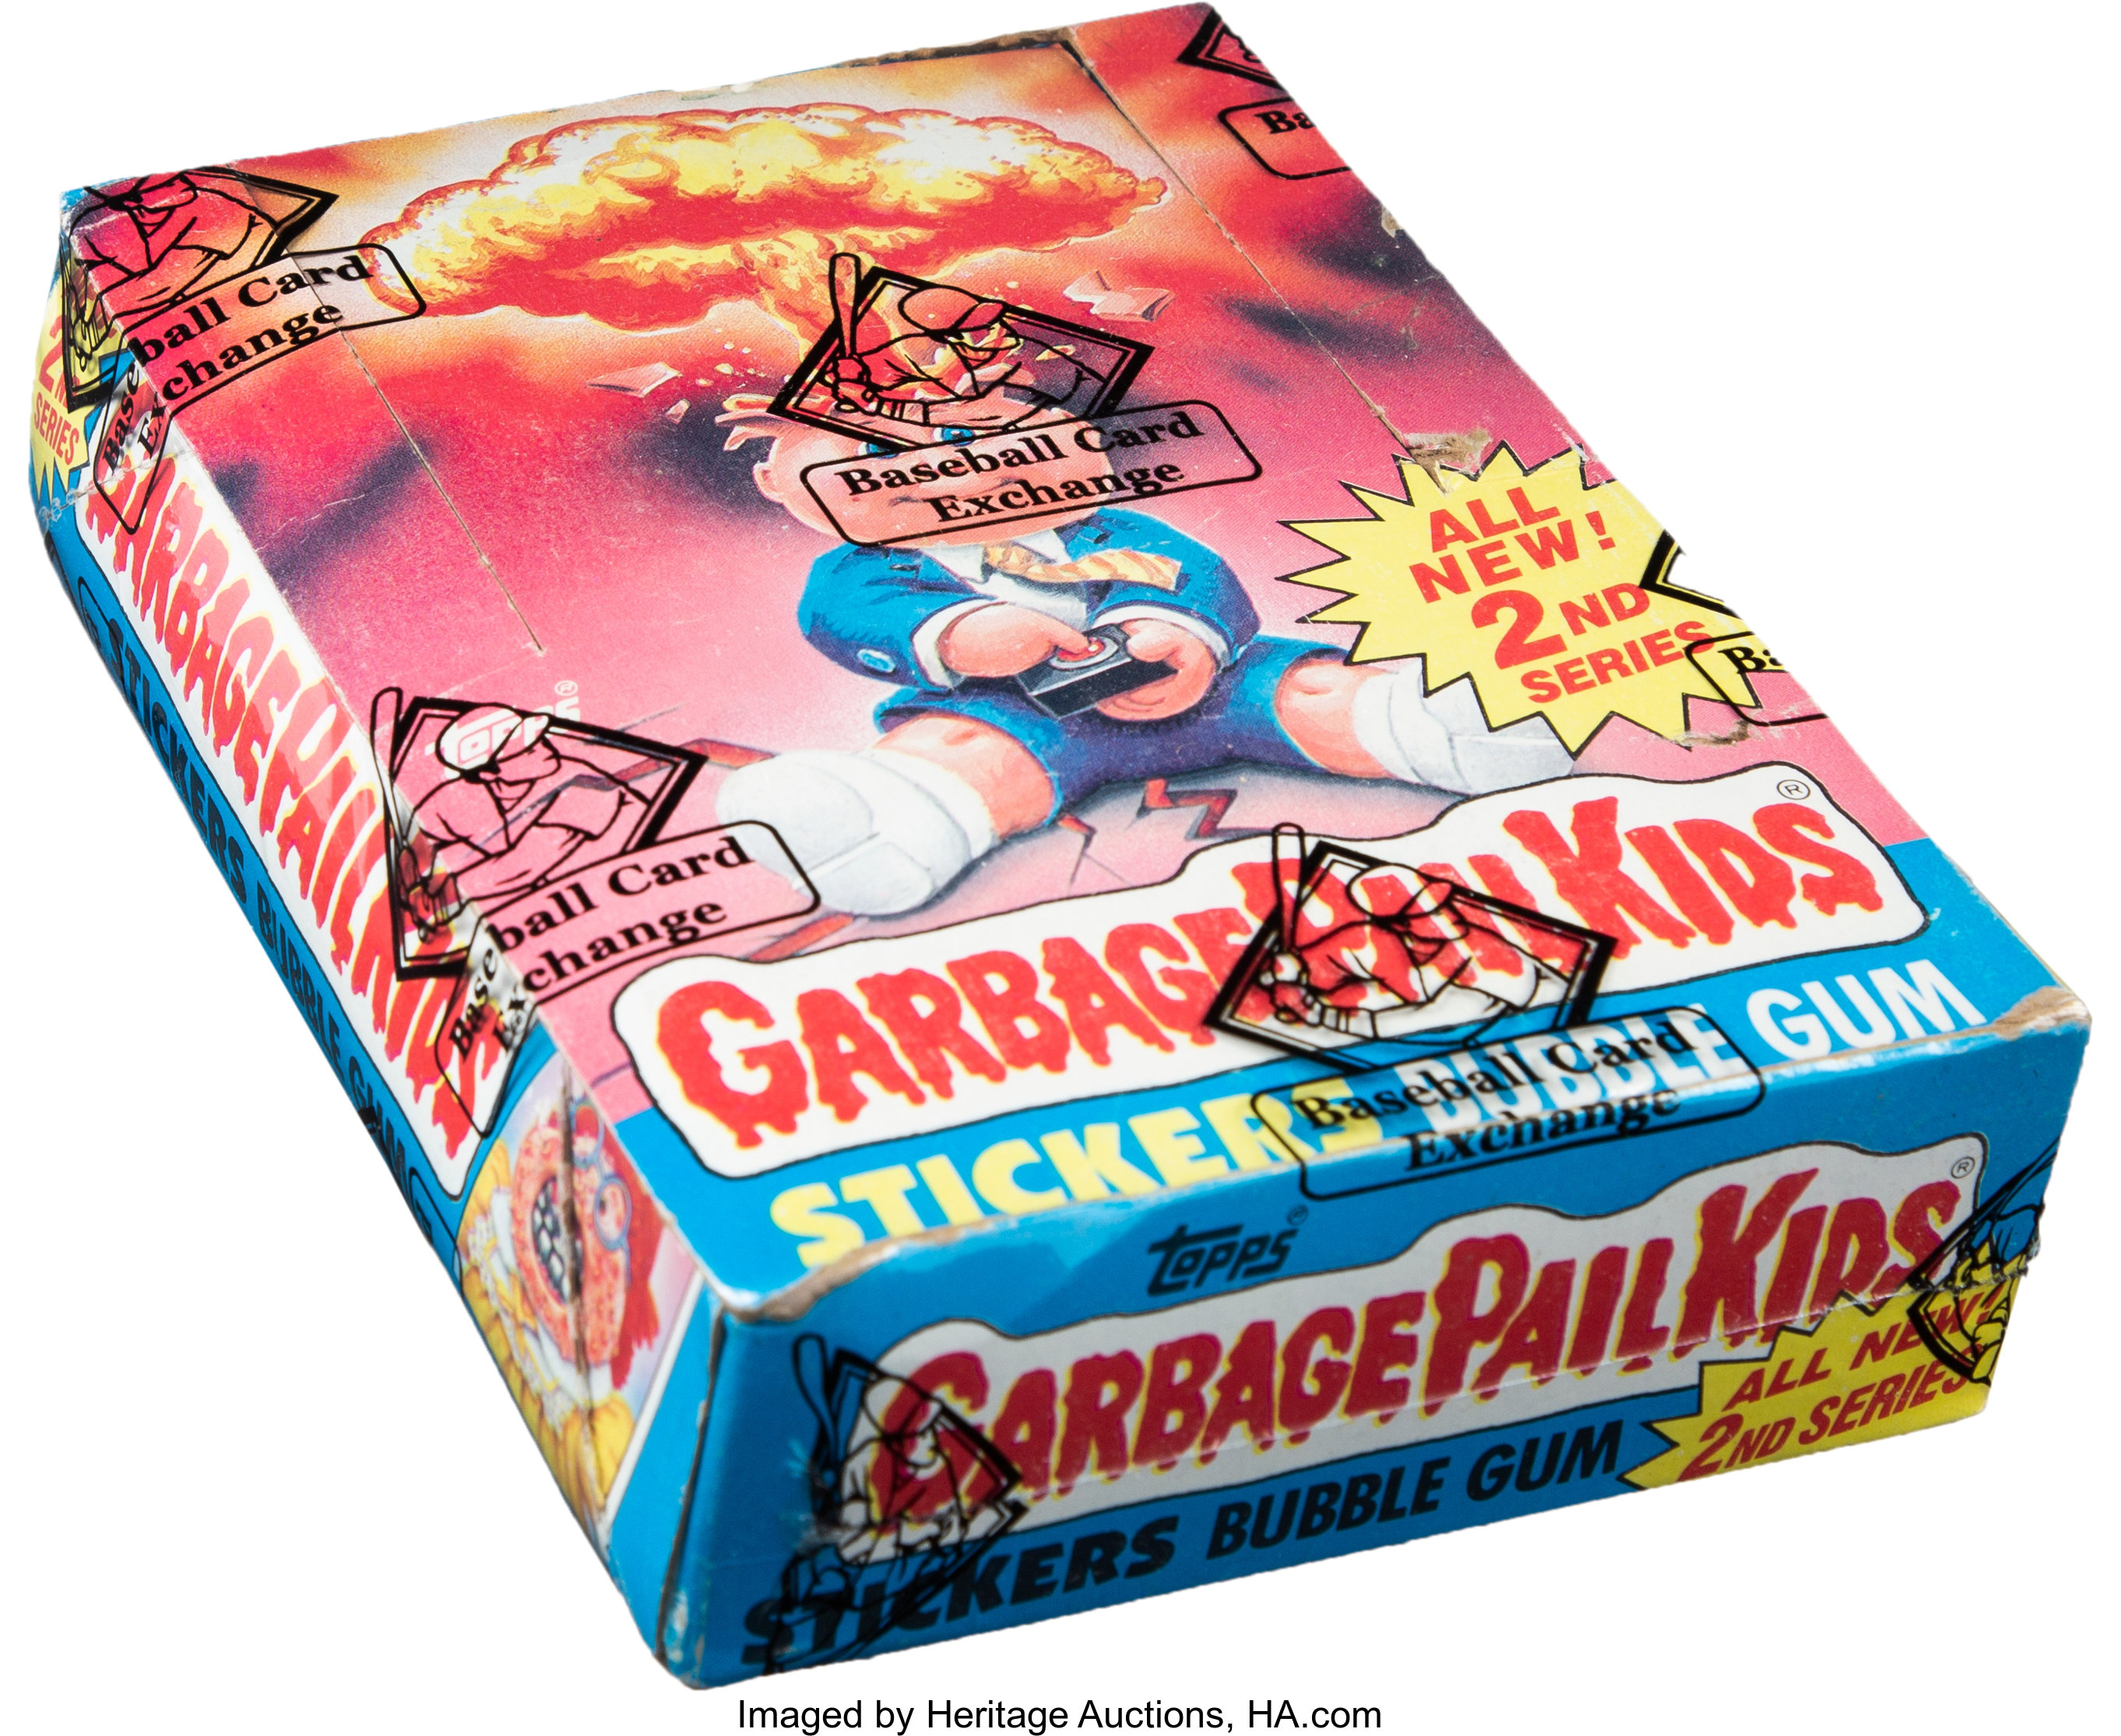 1985 Topps Garbage Pail Kids Series 2 Wax Box With 48 Unopened Lot 50950 Heritage Auctions